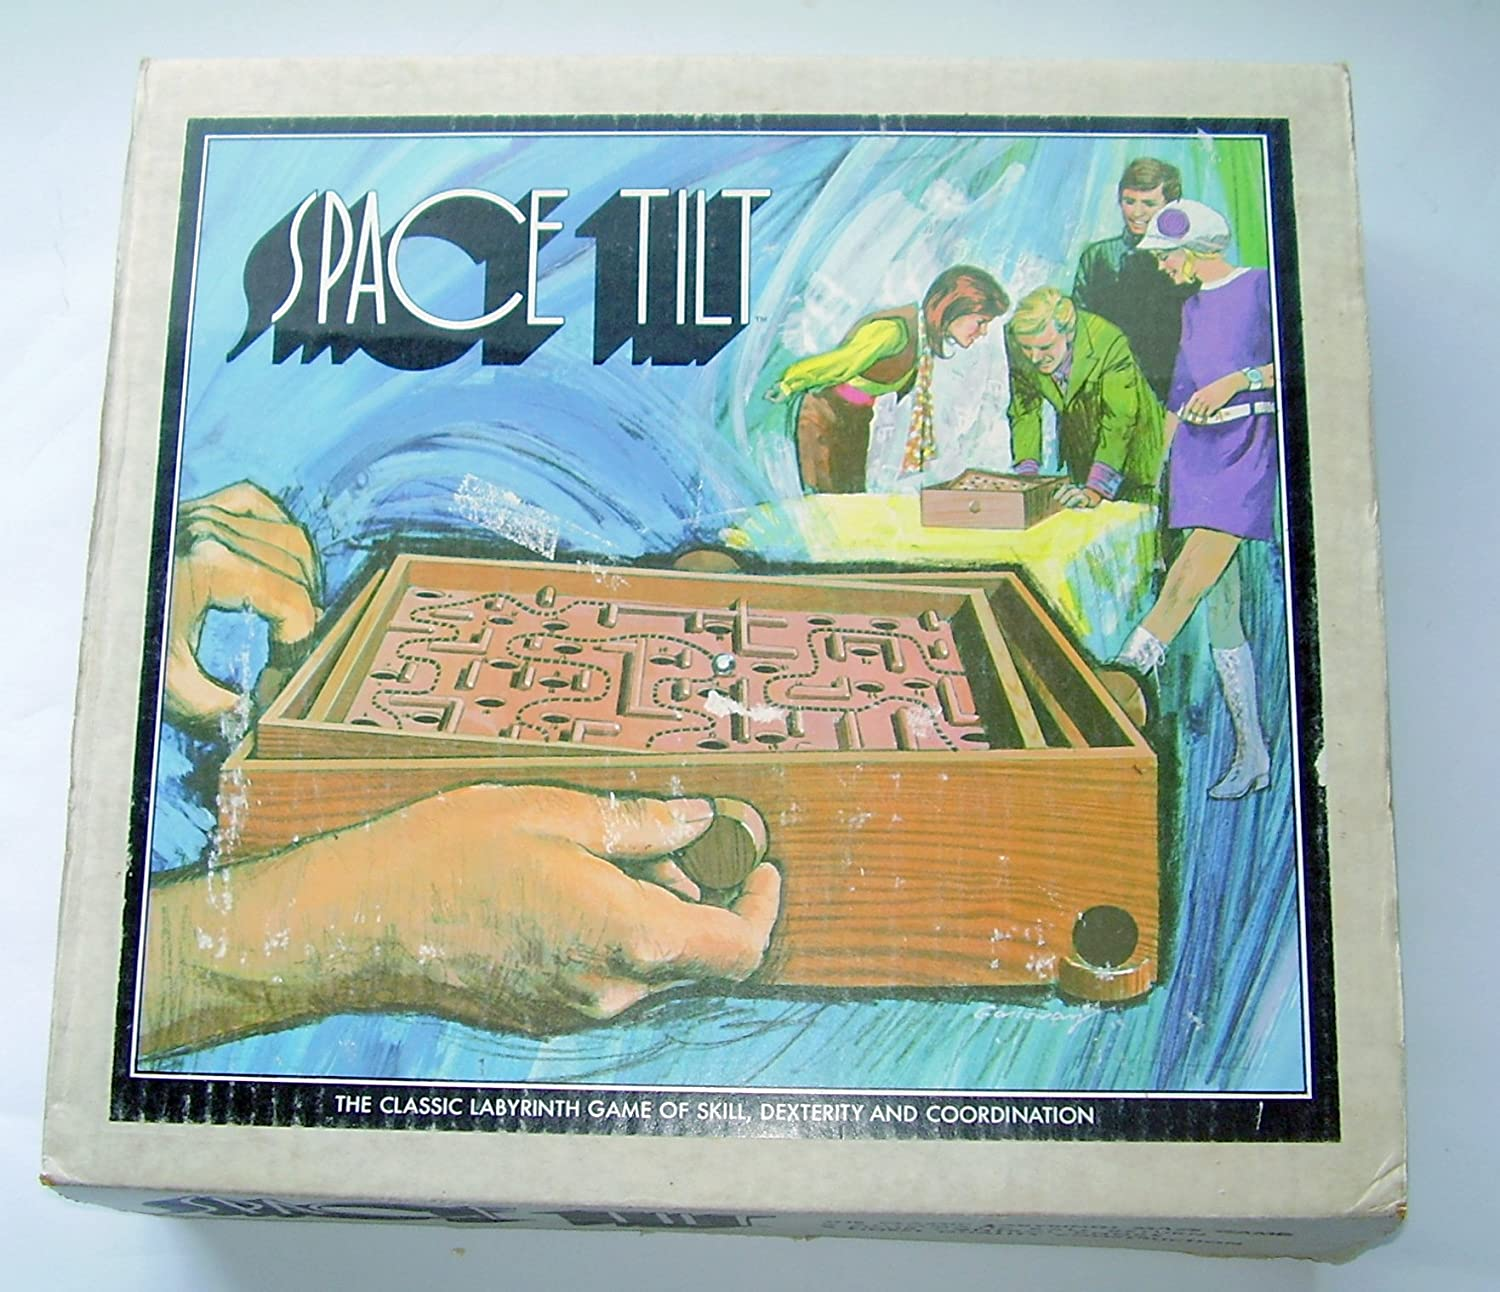 Amazon com: Vintage SPACE TILT Labyrinth Maze Game from the 60's or